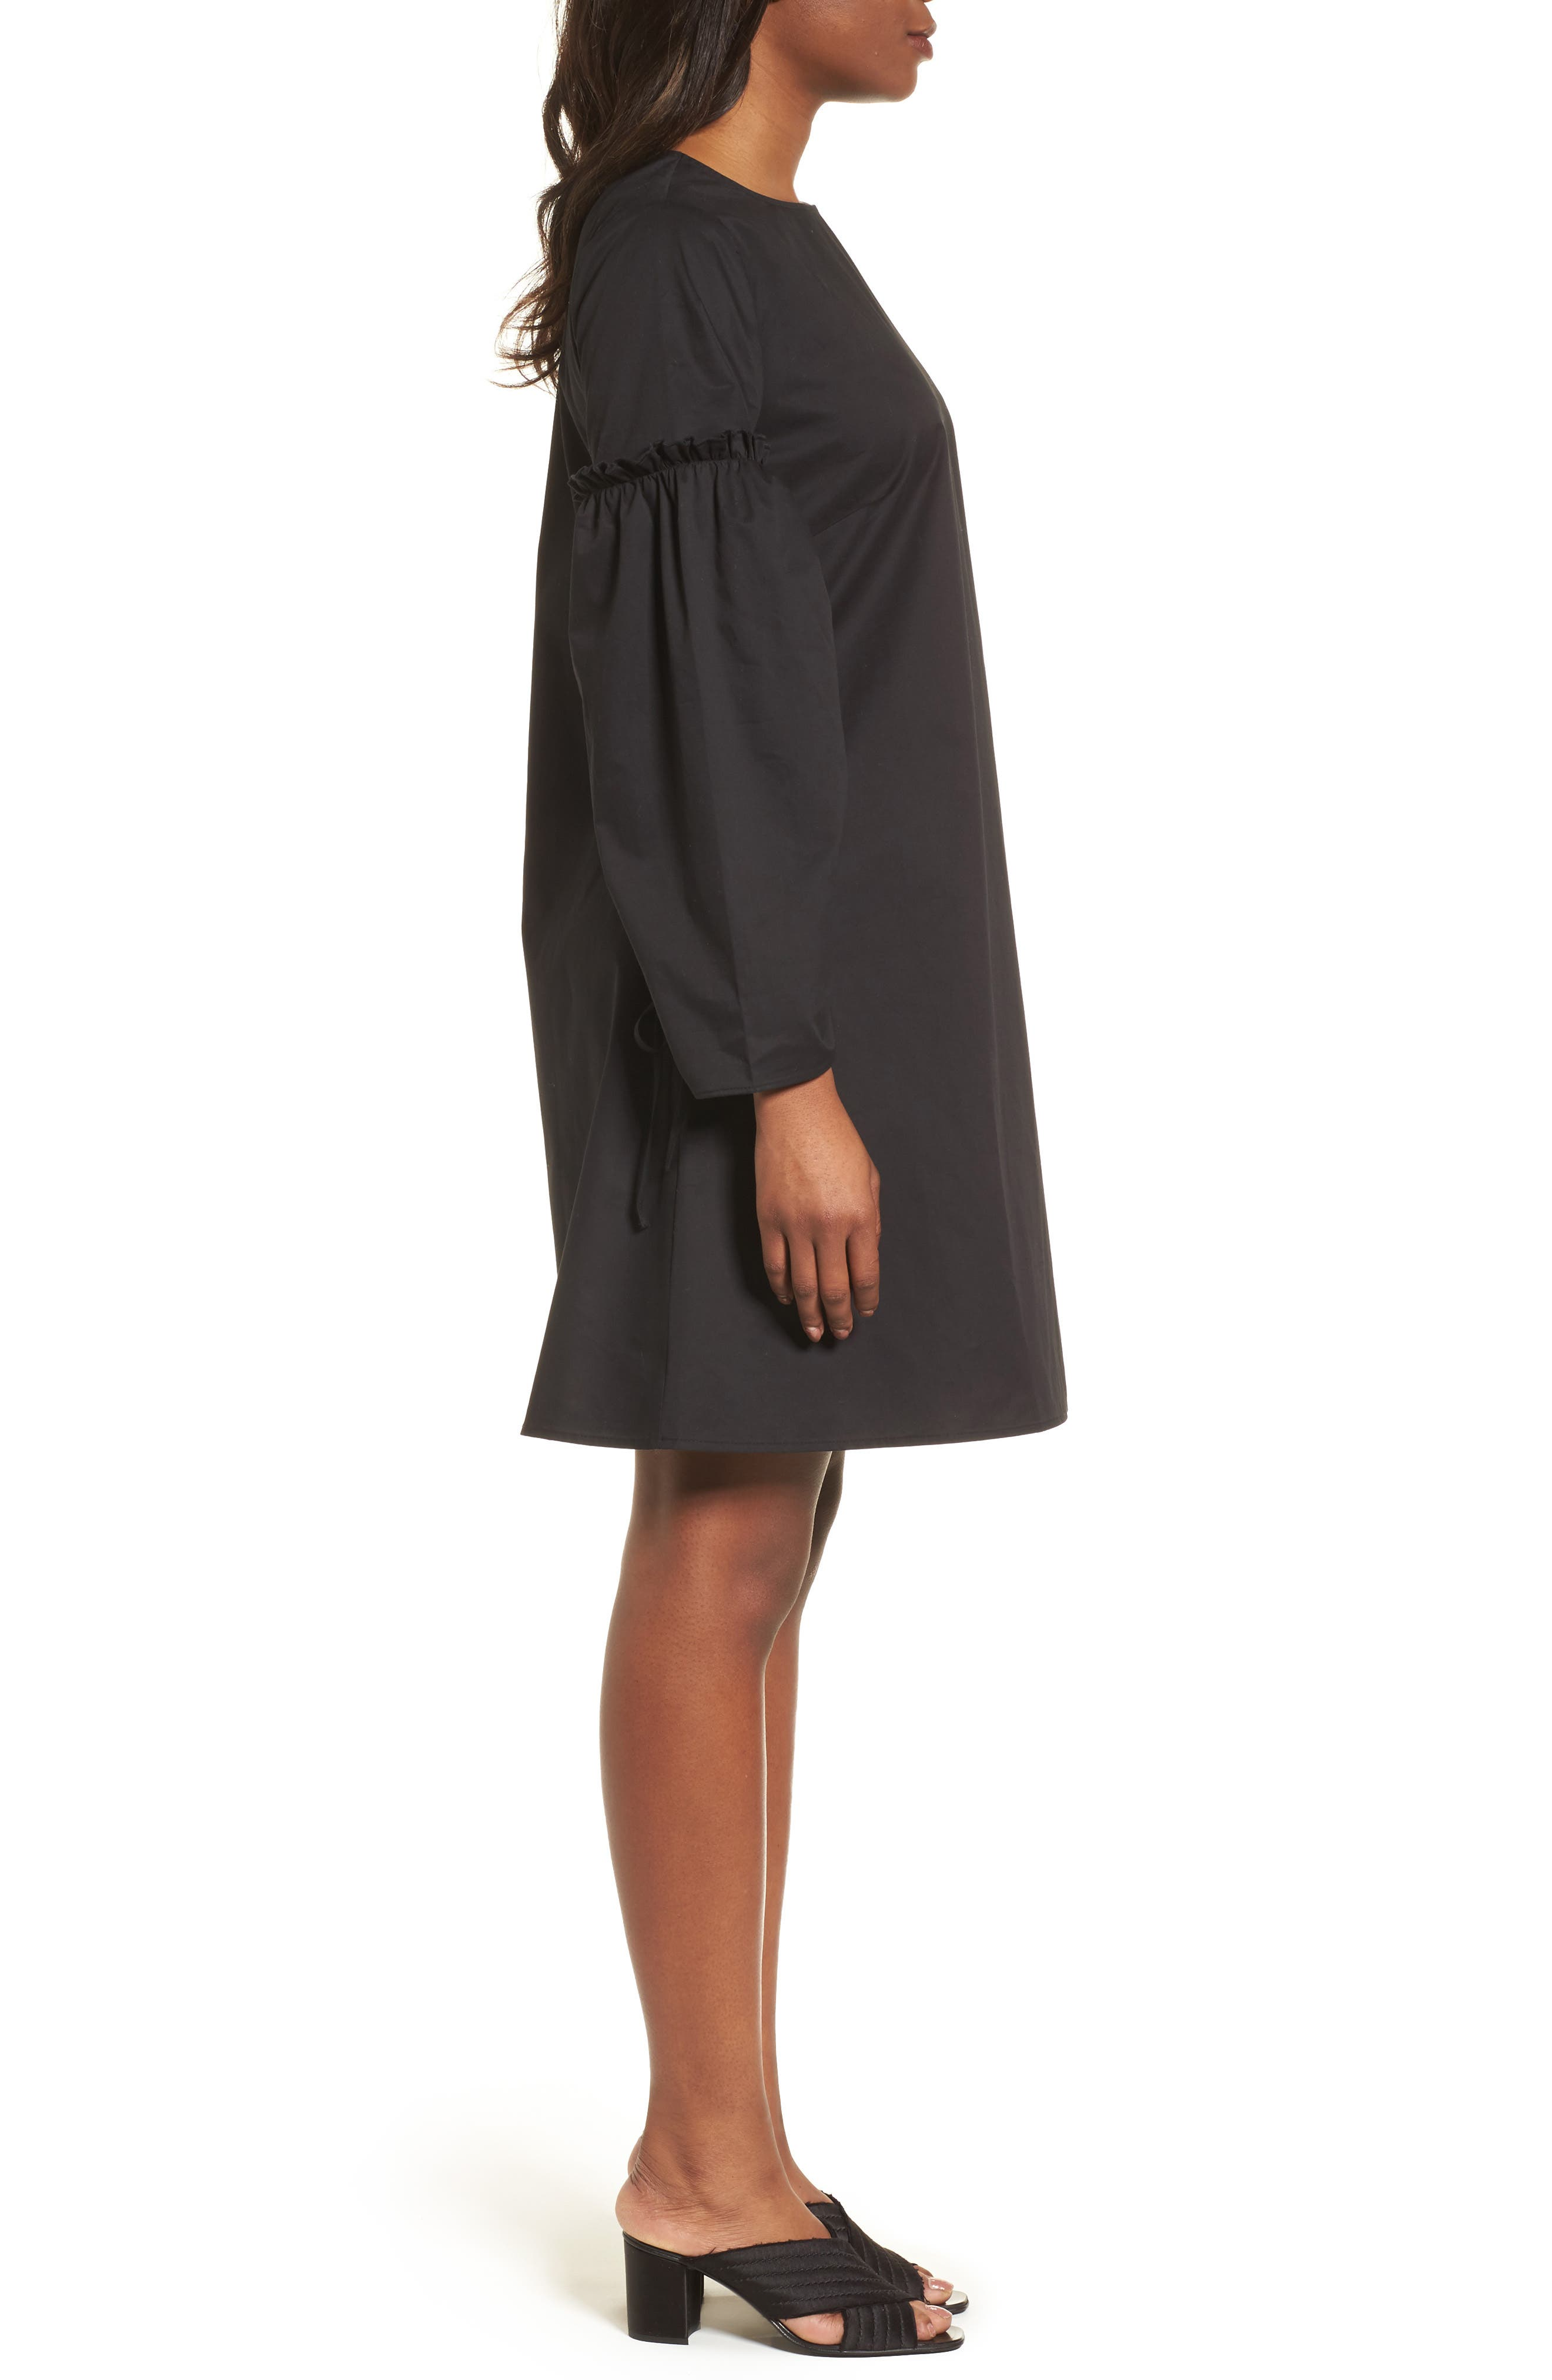 Parachute Sleeve Shift Dress,                             Alternate thumbnail 3, color,                             001